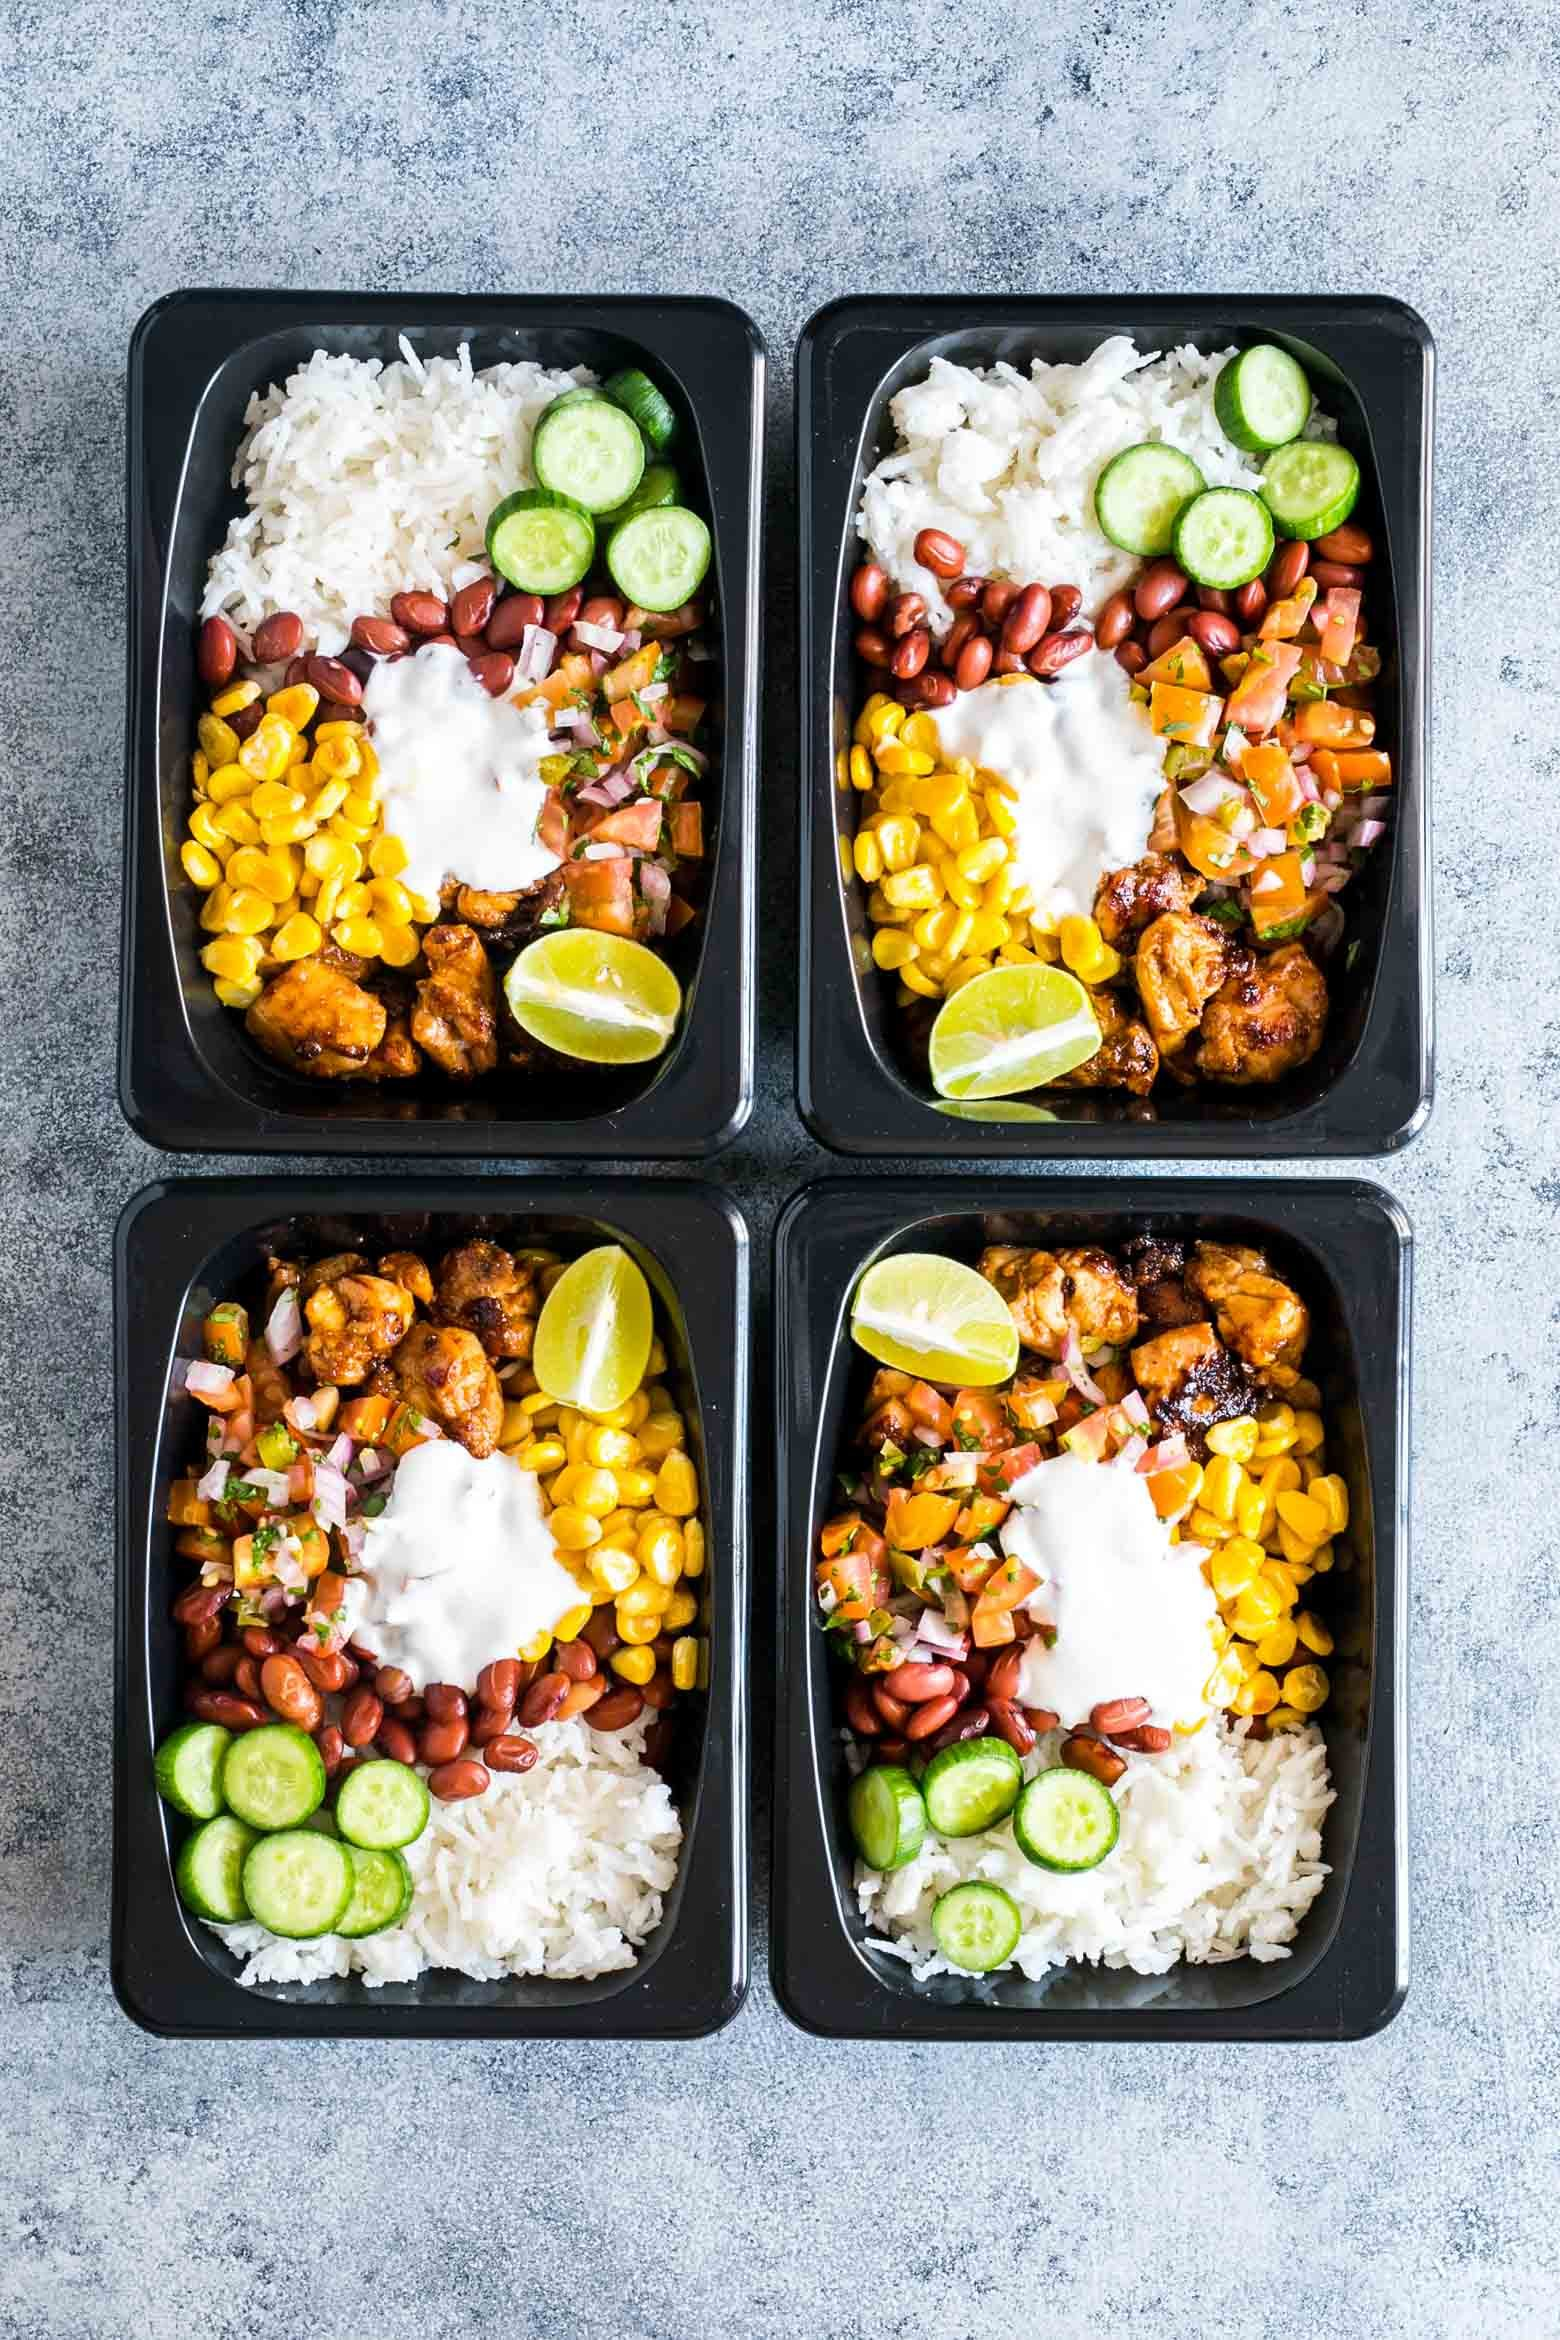 Easy Chicken Burrito Meal Prep Bowls Gluten Free | 25+ healthy meal prep ideas